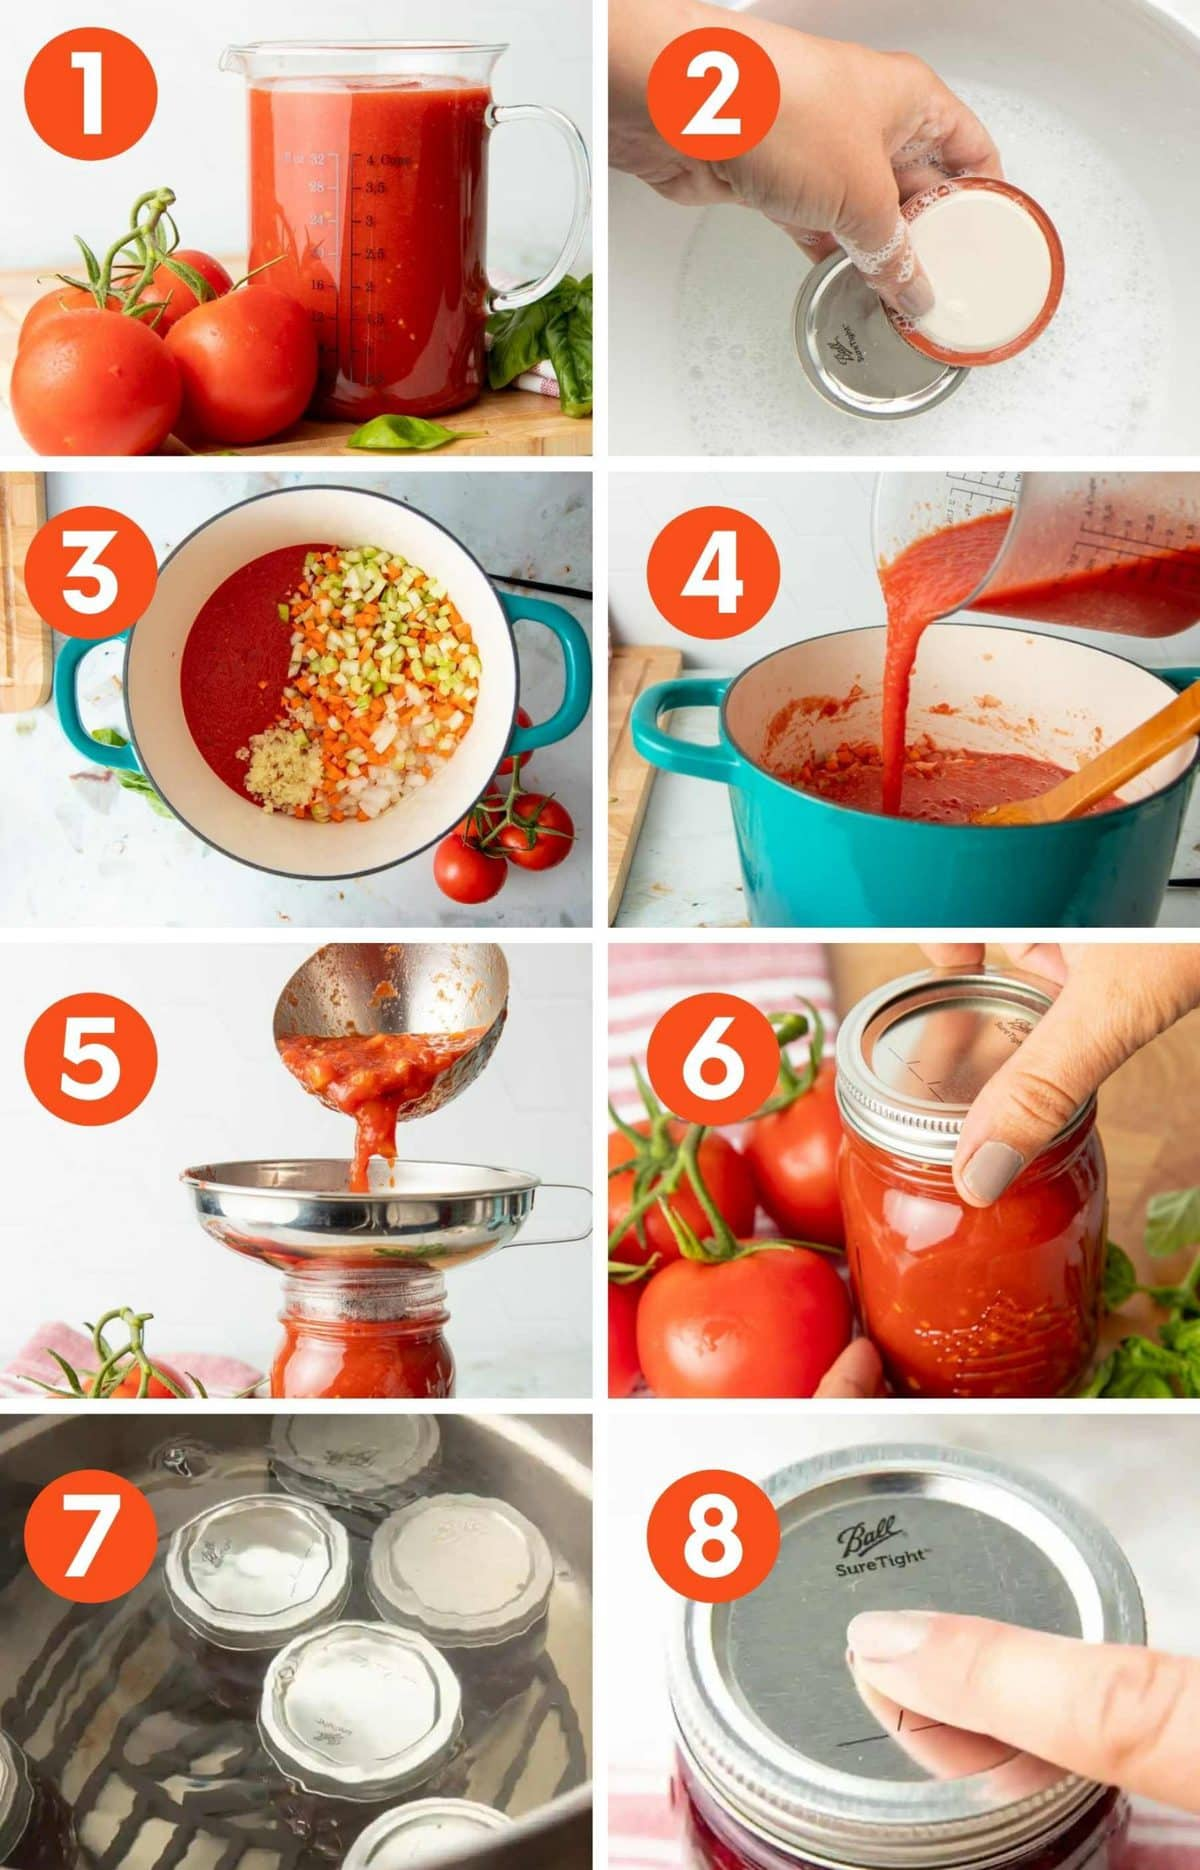 Collage of images showing the steps for canning spaghetti sauce